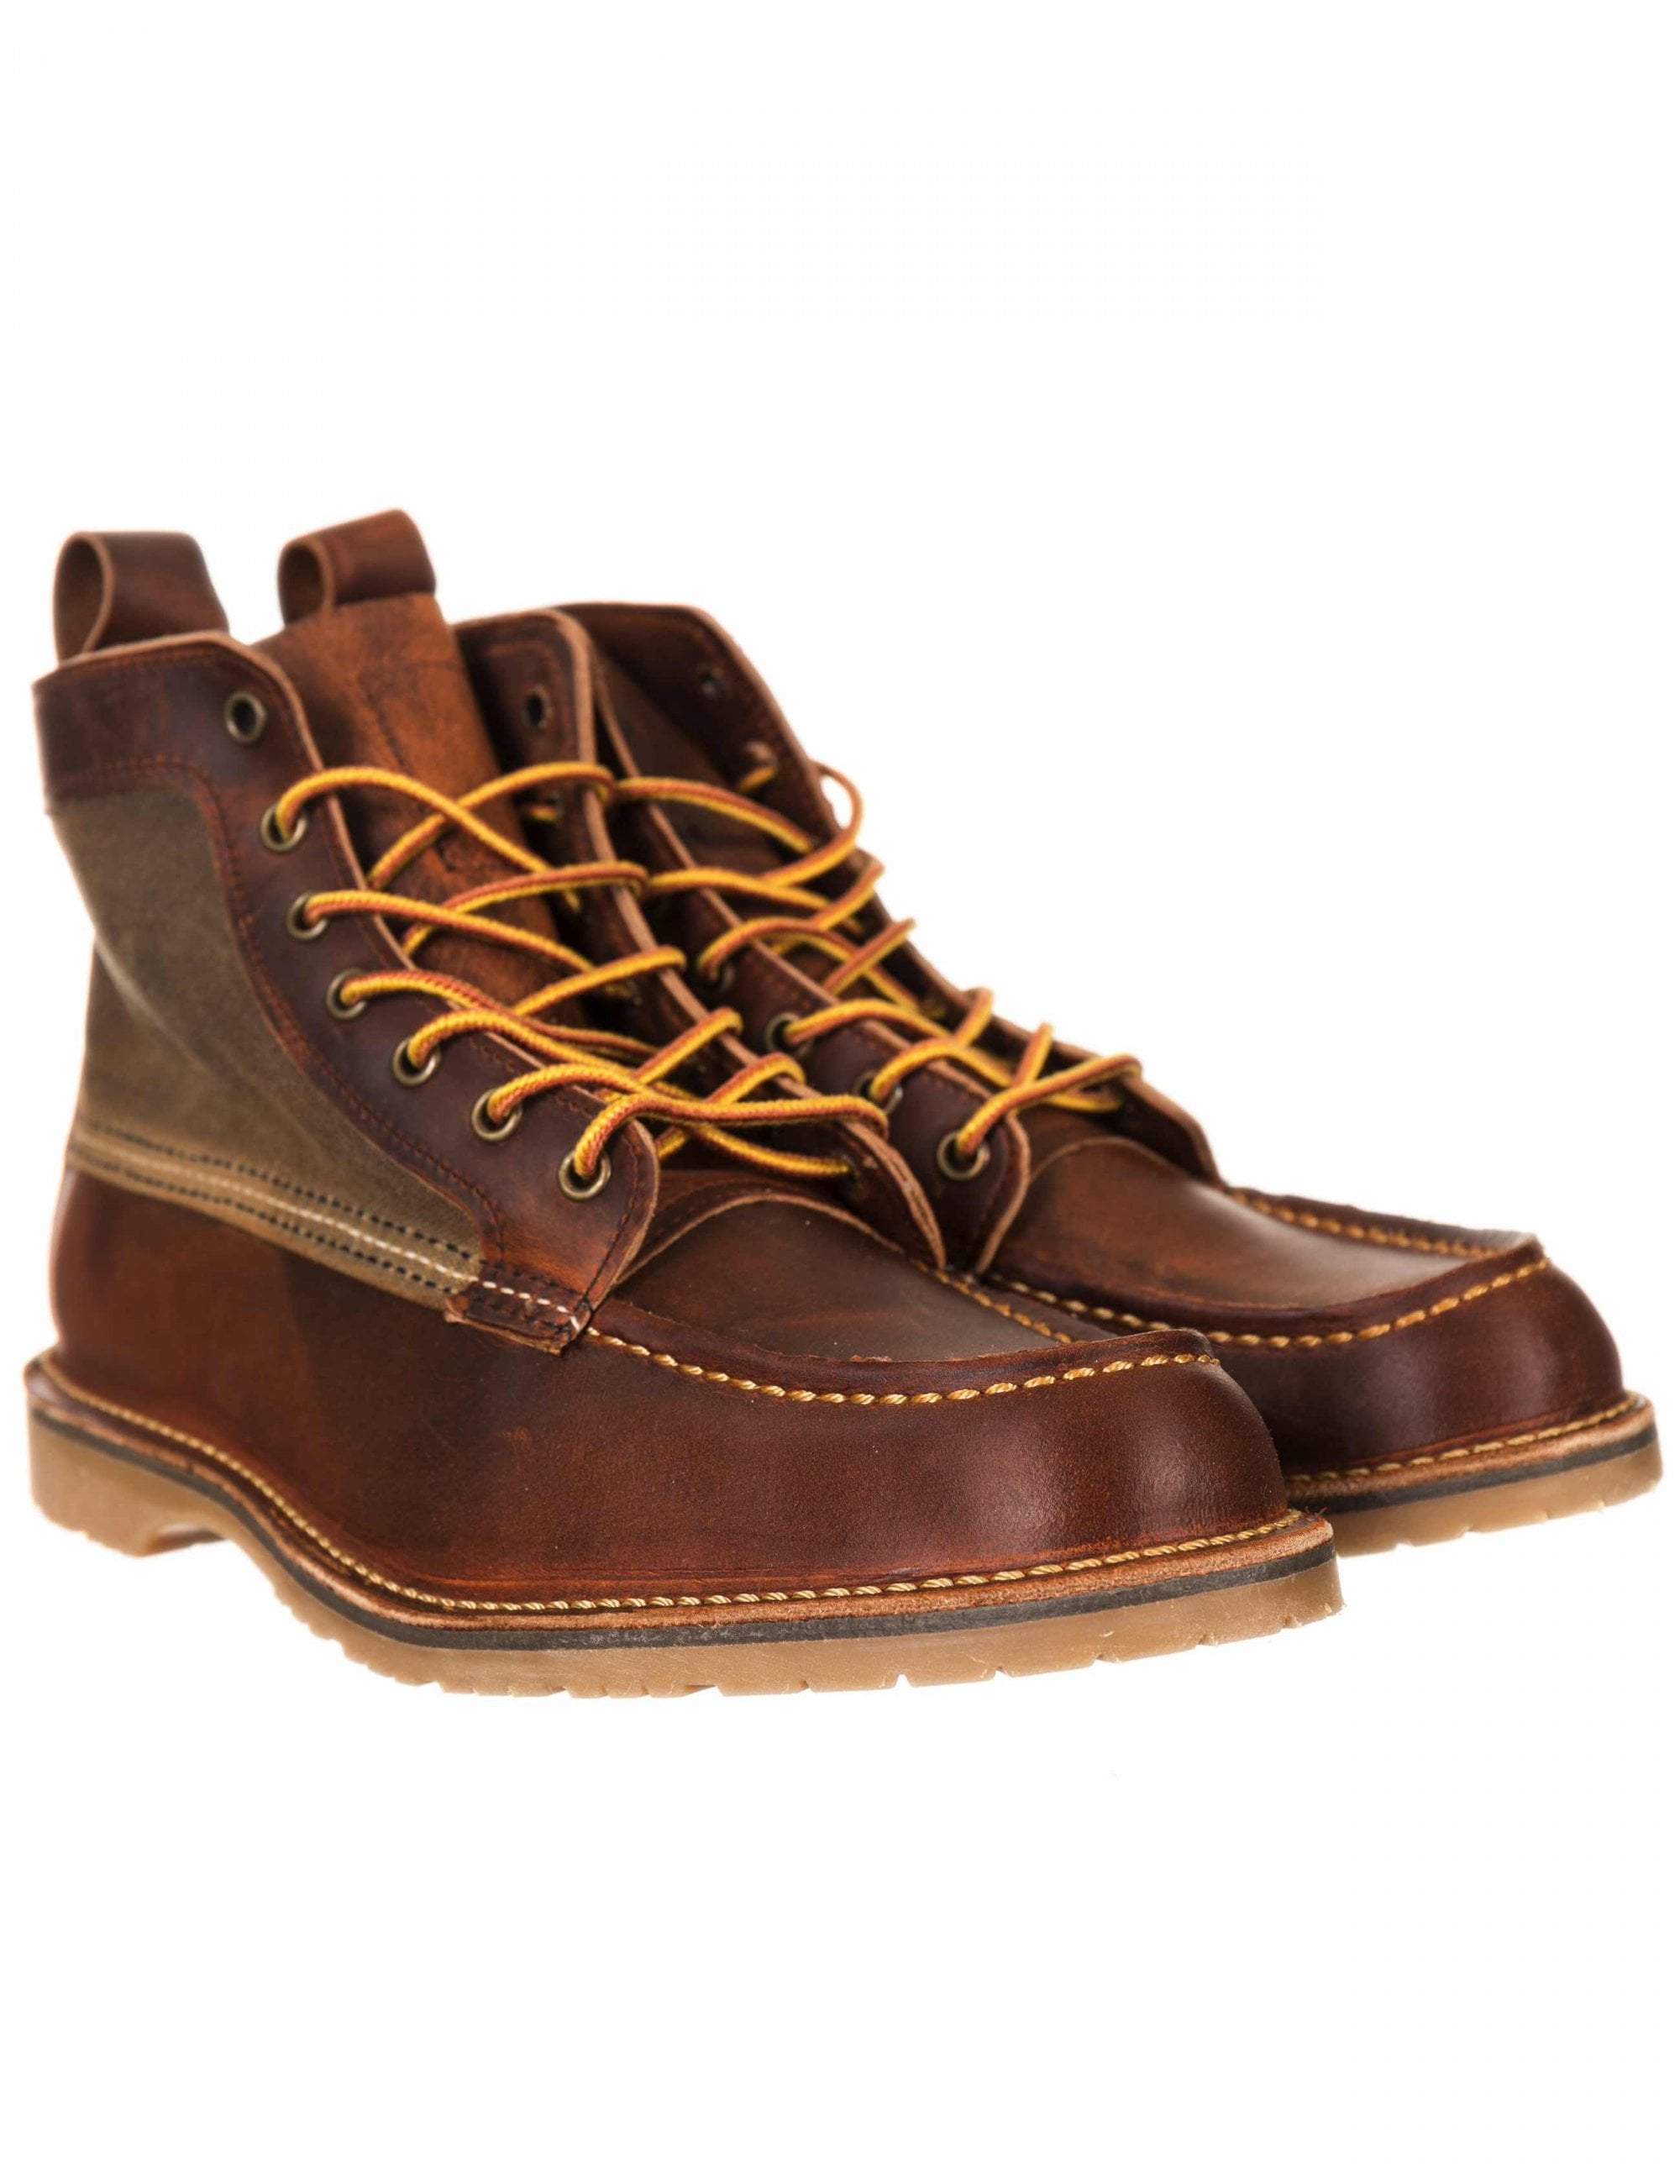 Red Wing 3335 Wacouta Boot | Copper | 03335